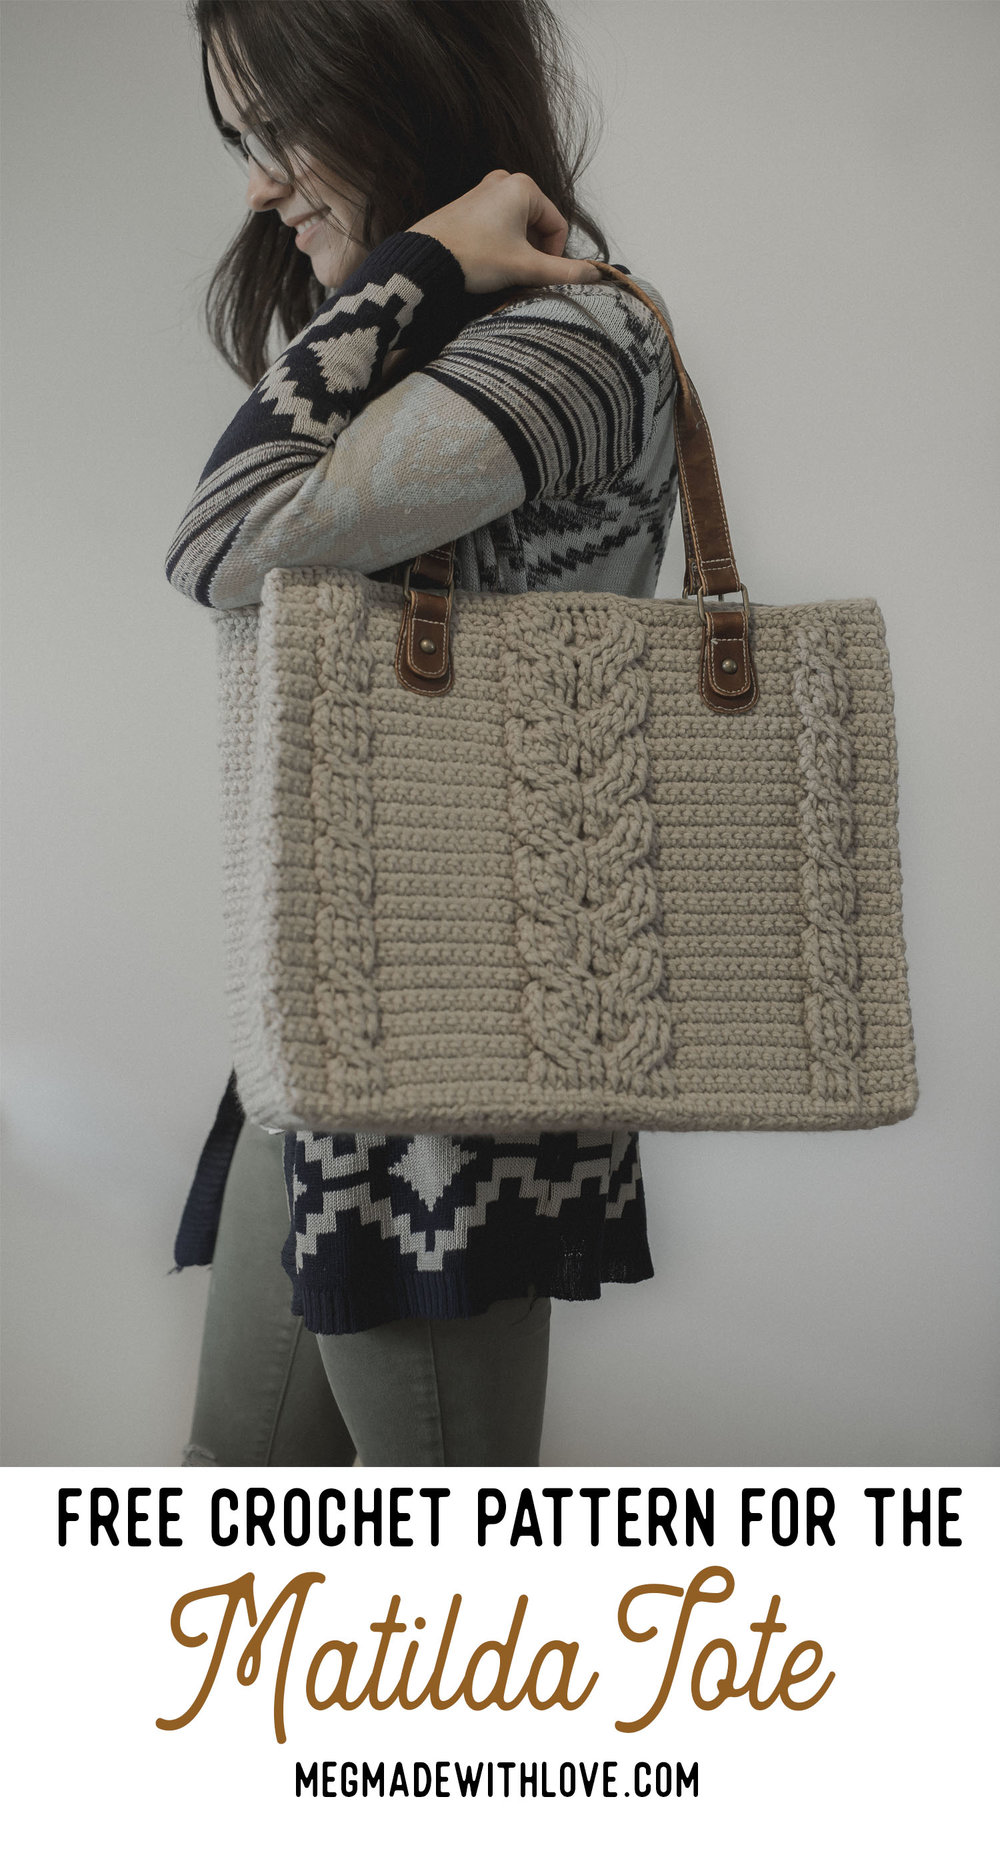 Free Crochet Pattern for the Matilda Tote - Cabled Purse - Megmade with Love